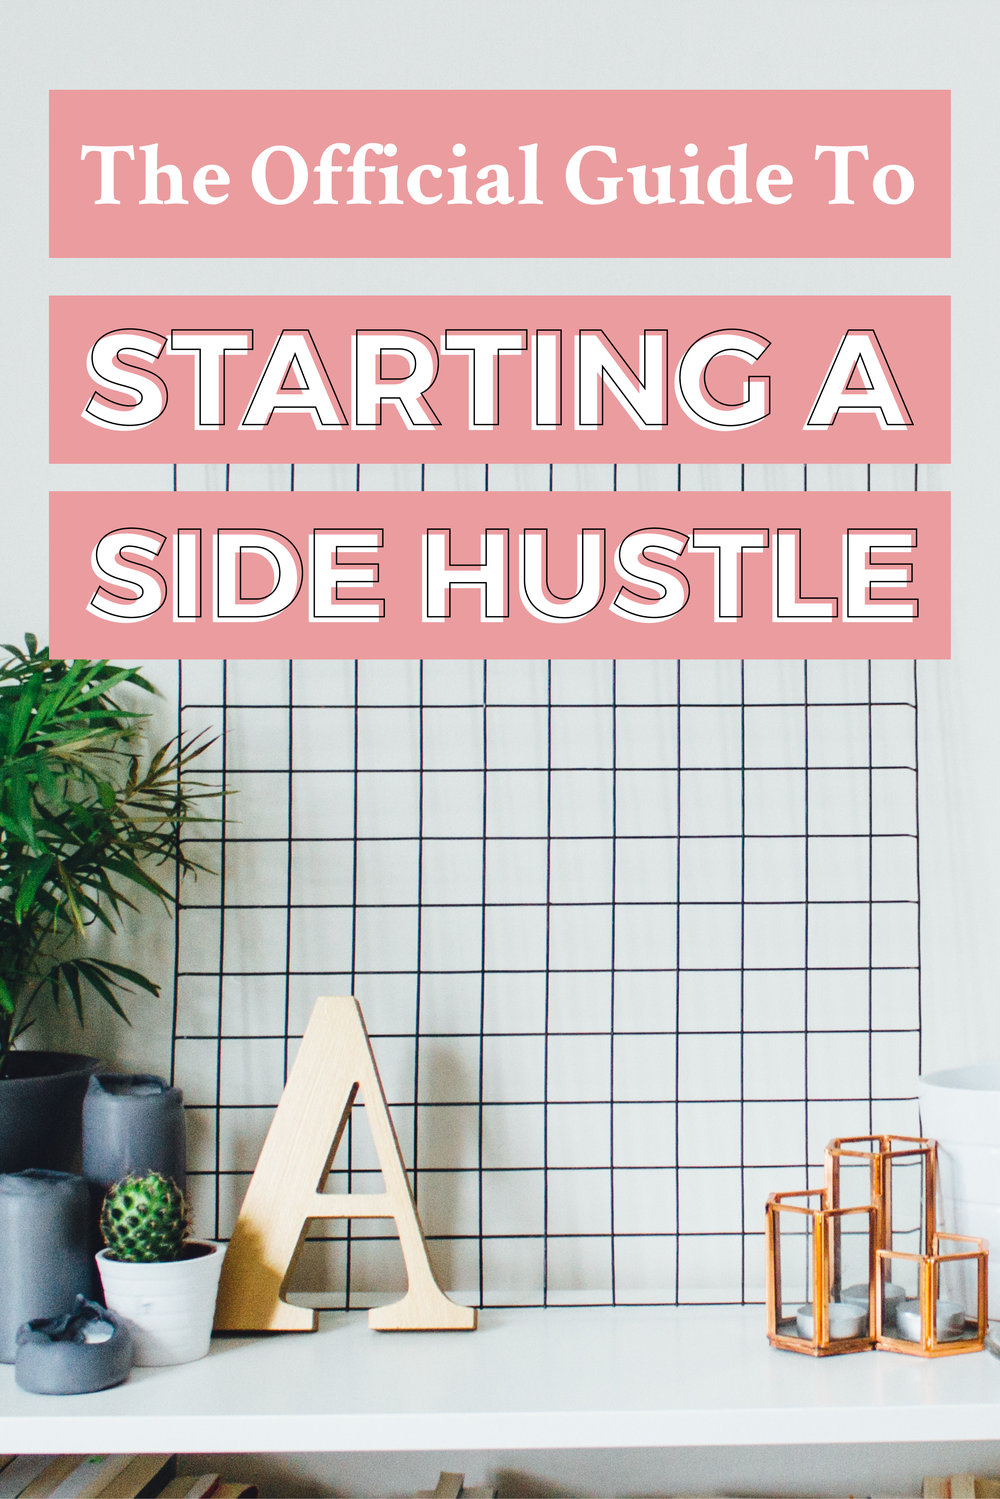 Things I've Created Using Adobe InDesign: The Official Guide to Starting a Side Hustle Website Banner